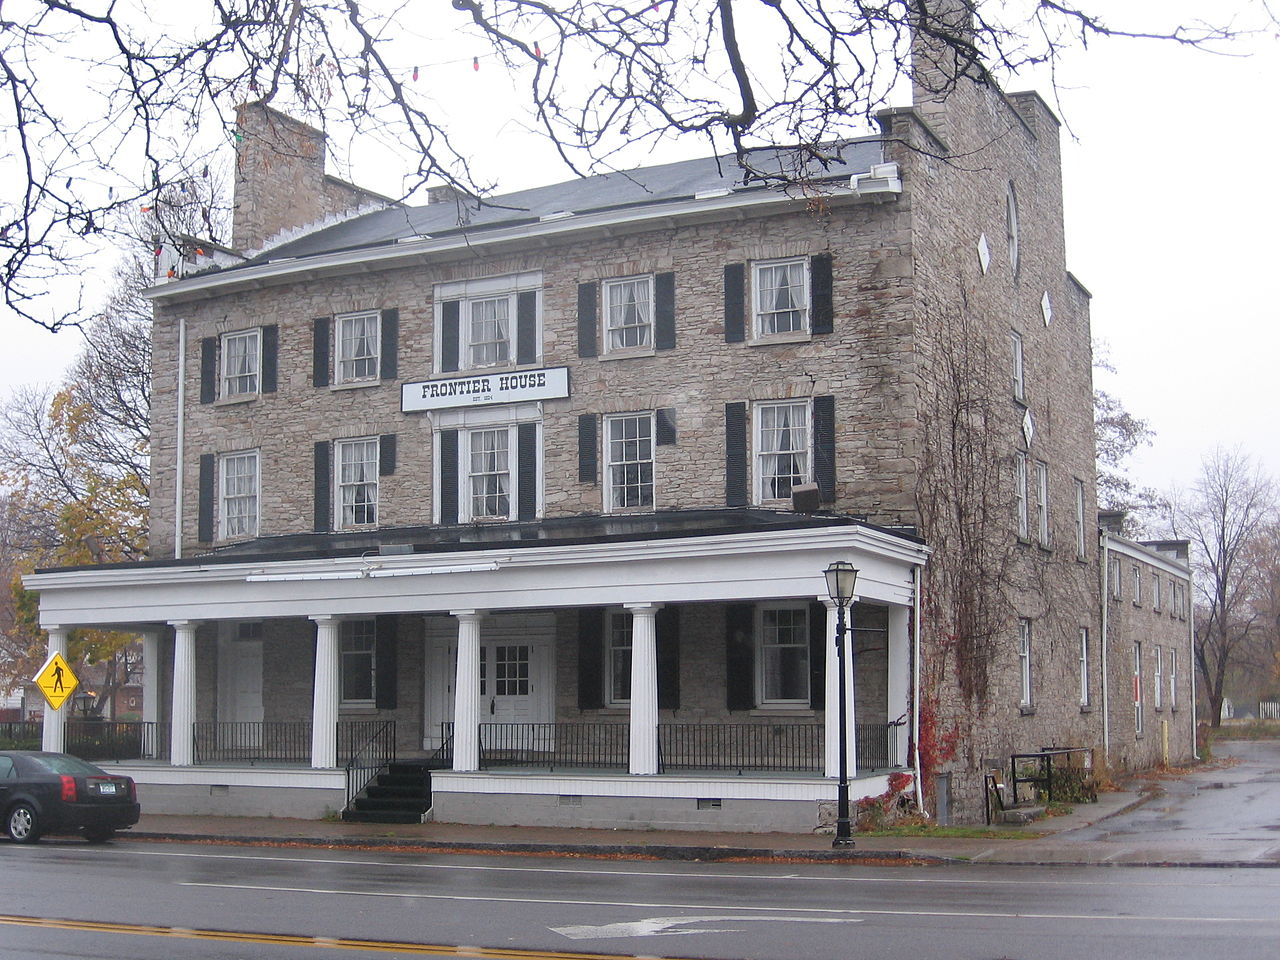 Frontier House was once one of the country's finest hotels. Many famous people stayed at the hotel including Mark Twain and Henry Clay.